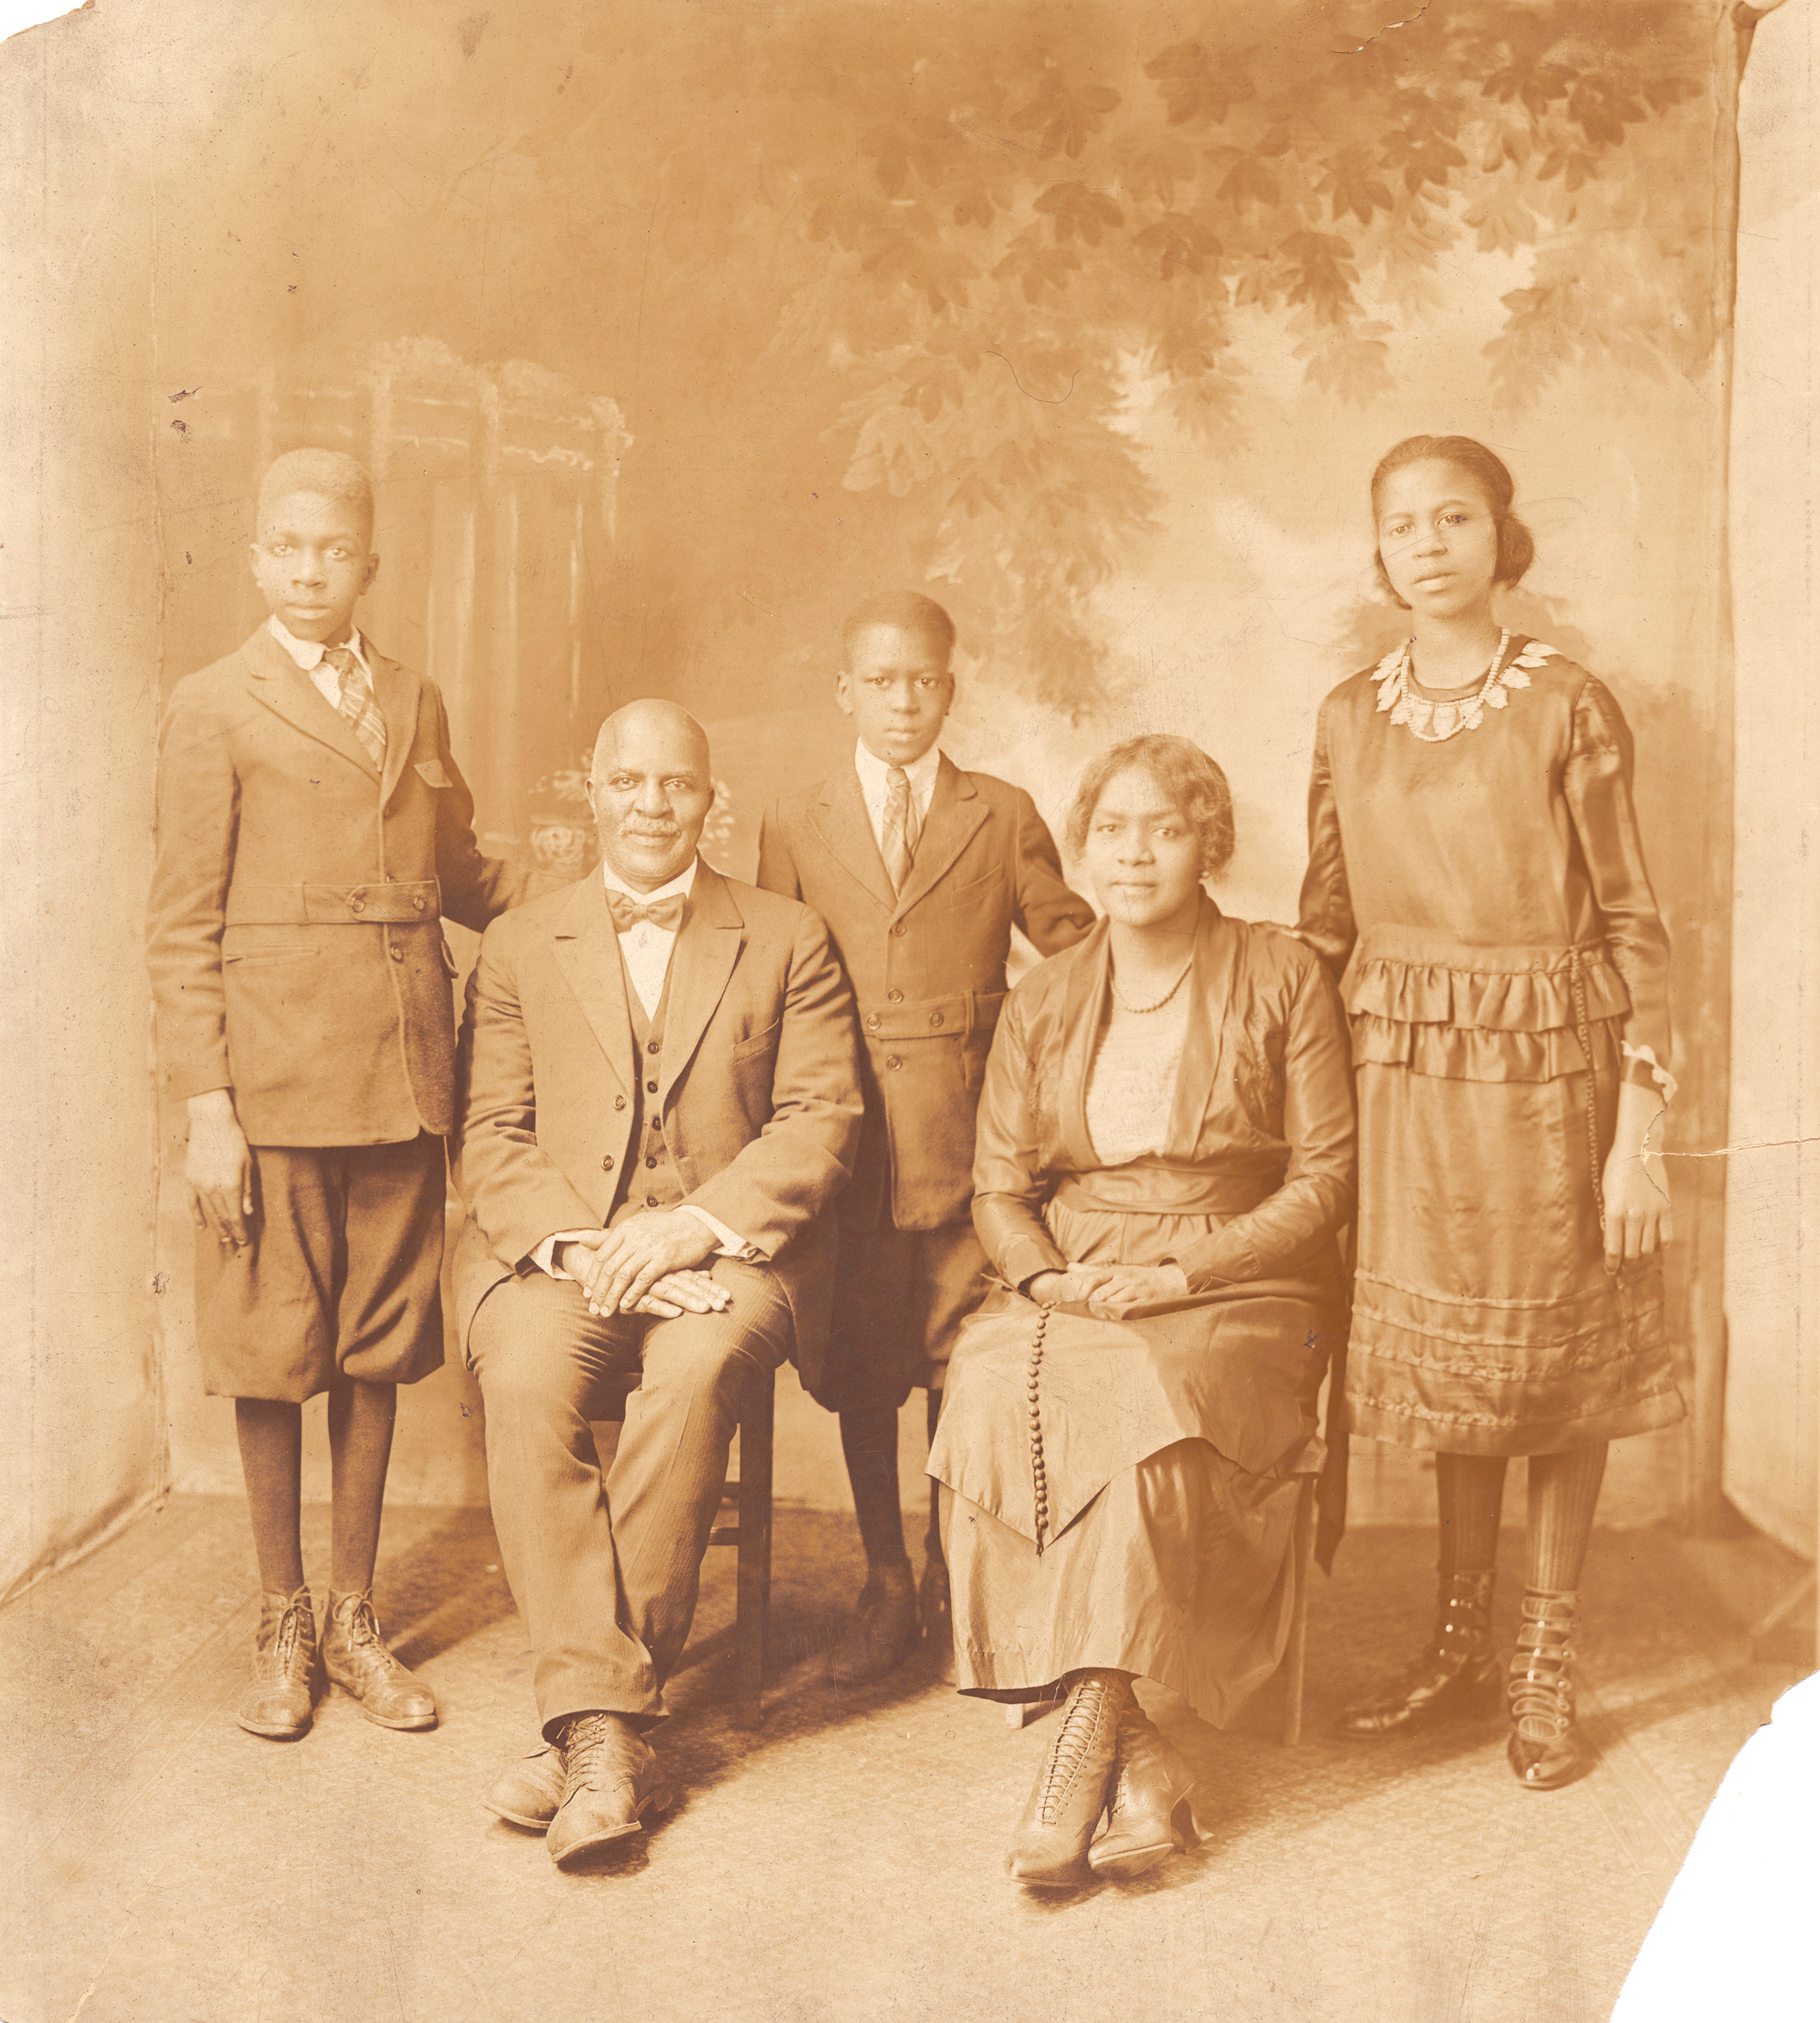 Portrait of the Morris family, who moved to Chicago during the Great Migration of African Americans from the South to northern cities around the time of World War I, ca.1915.